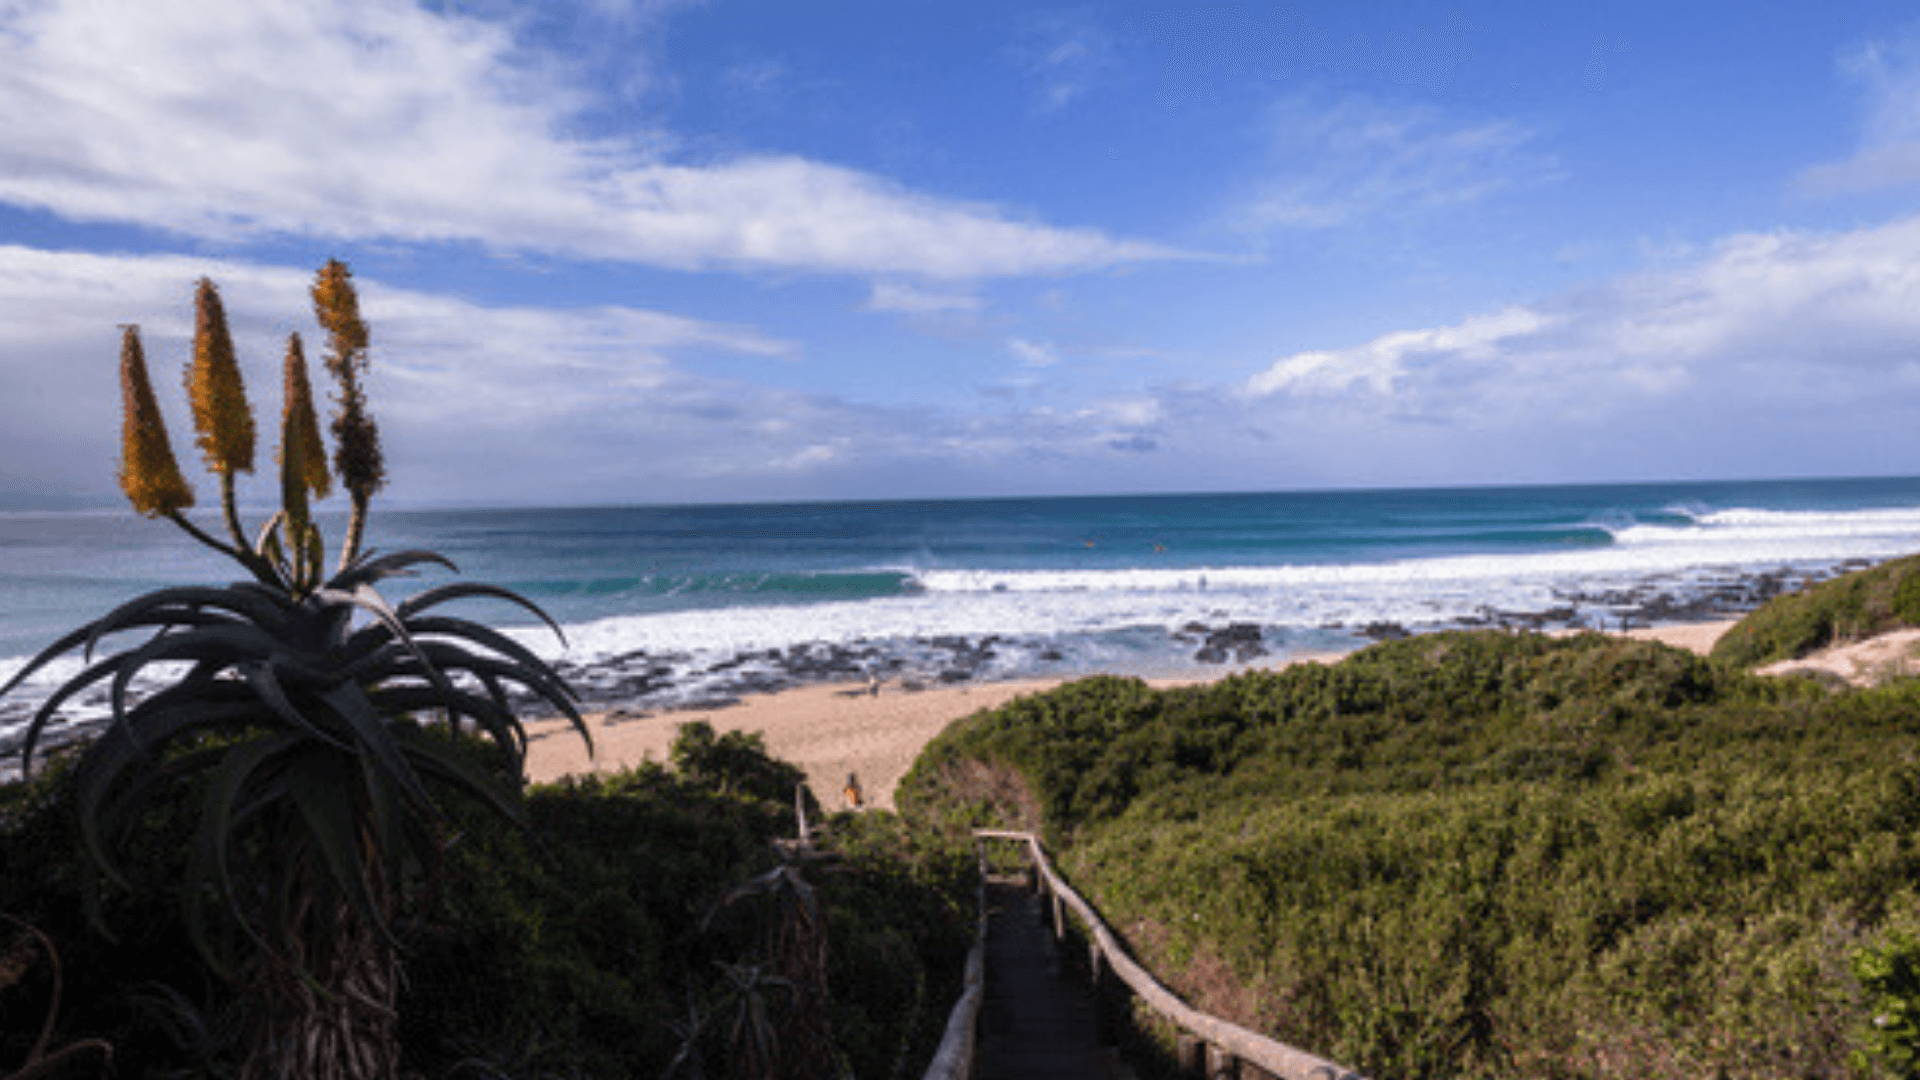 Jbay, South Africa: It Only Takes One To Change You Forever